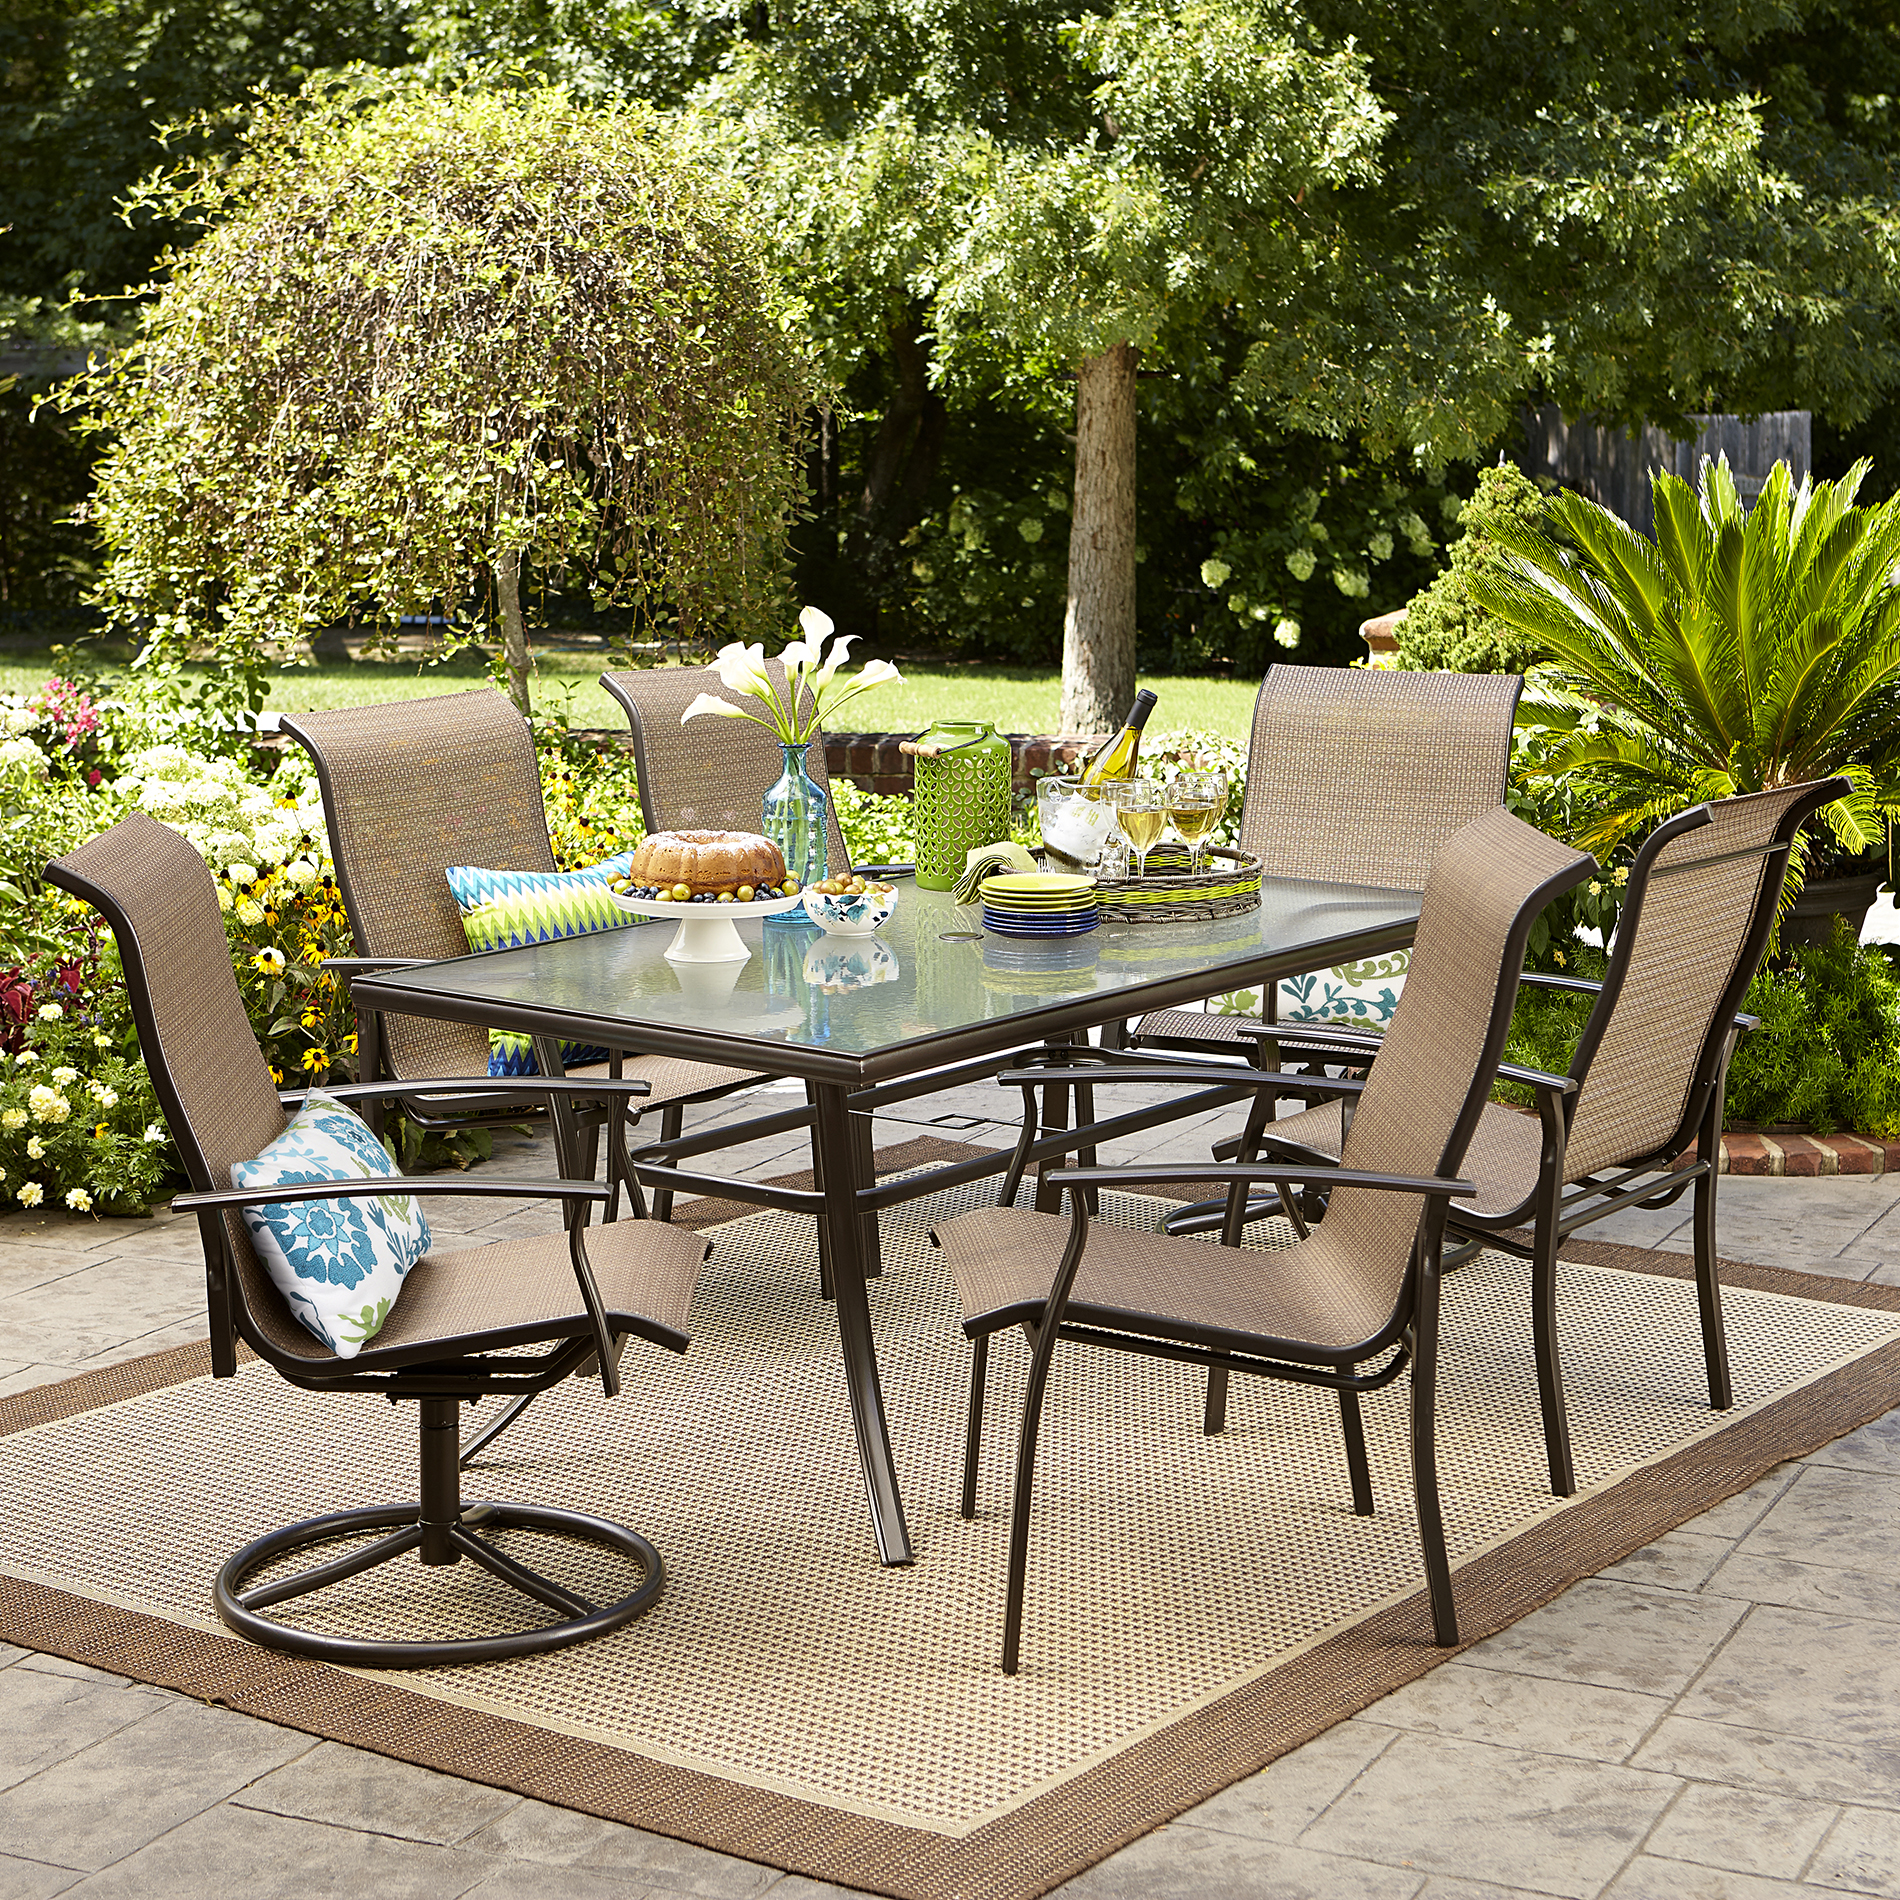 7 Piece Patio Set Garden Oasis Harrison 7 Pc Textured Glass Top Dining Set